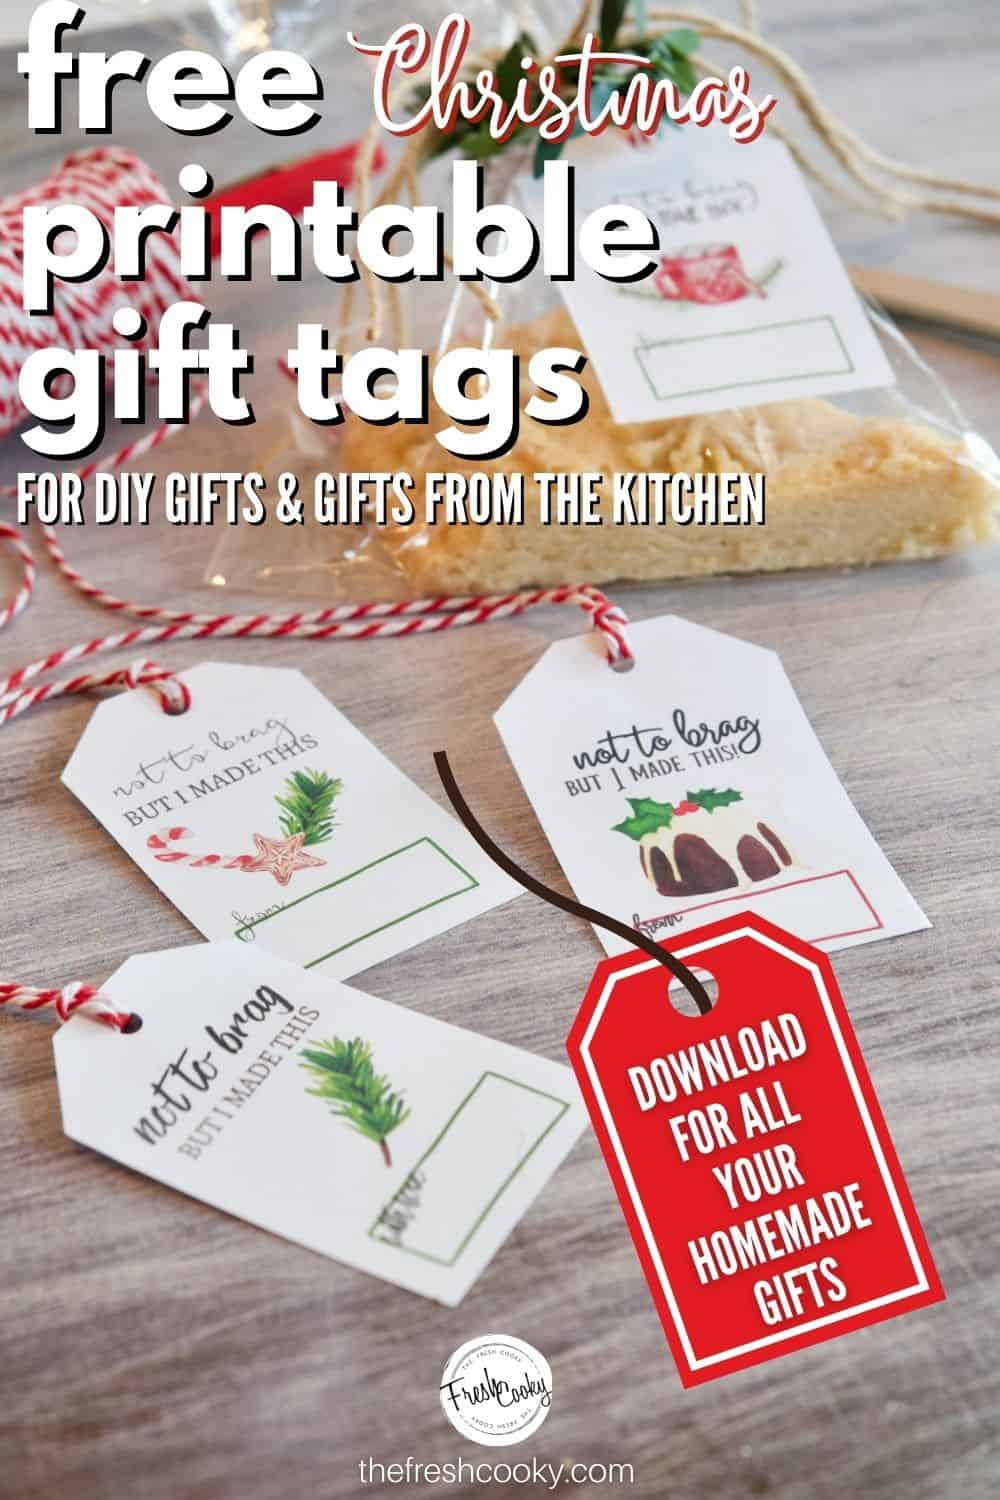 These free Christmas Gift Tag printables are perfect for all of your holiday food making, food gifts, handmade gifts, DIY gifts and more. 3 different types, each with 4 designs, all free! #thefreshcooky #freeprintables #christmasgifttags via @thefreshcooky